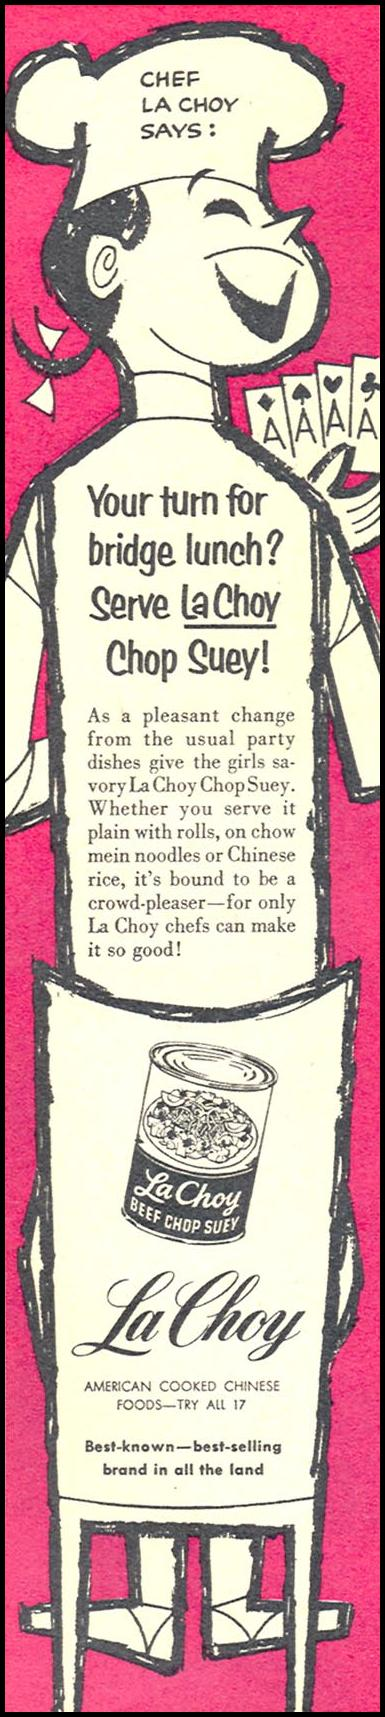 LA CHOY AMERICAN COOKED CHINESE FOODS FAMILY CIRCLE 02/01/1957 p. 16